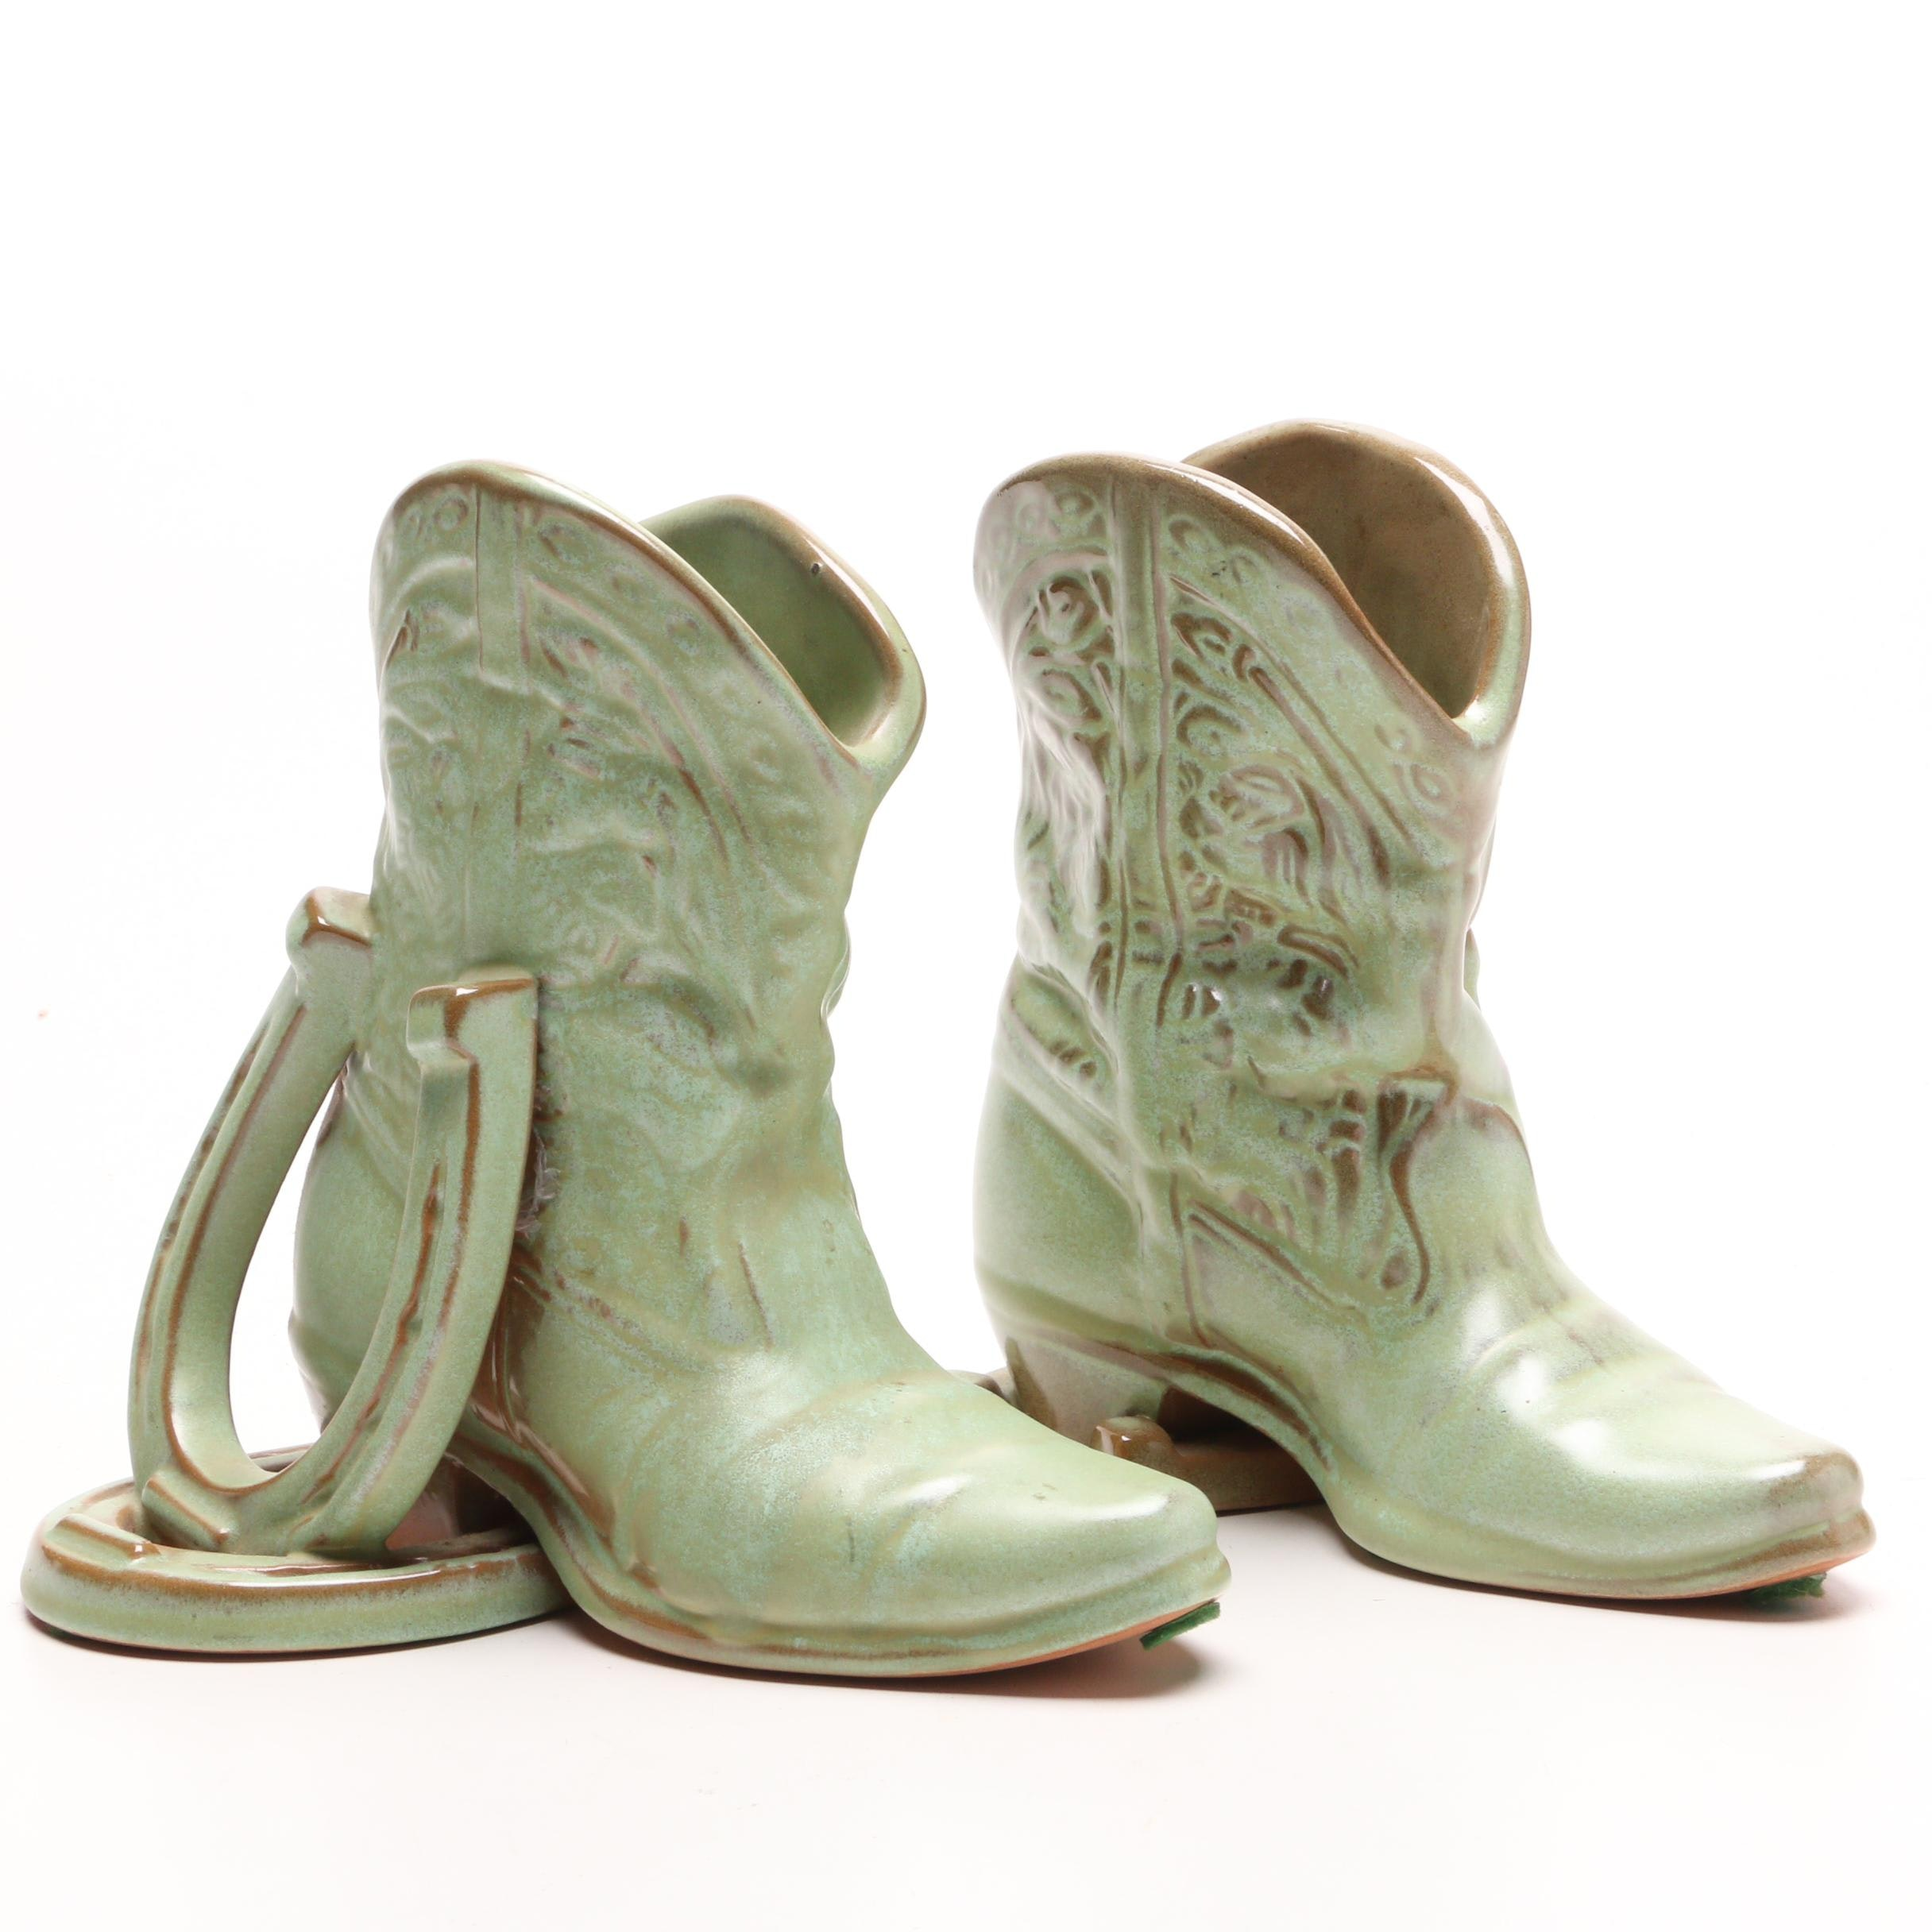 Frankoma Art Pottery Cowboy Boot Bookends